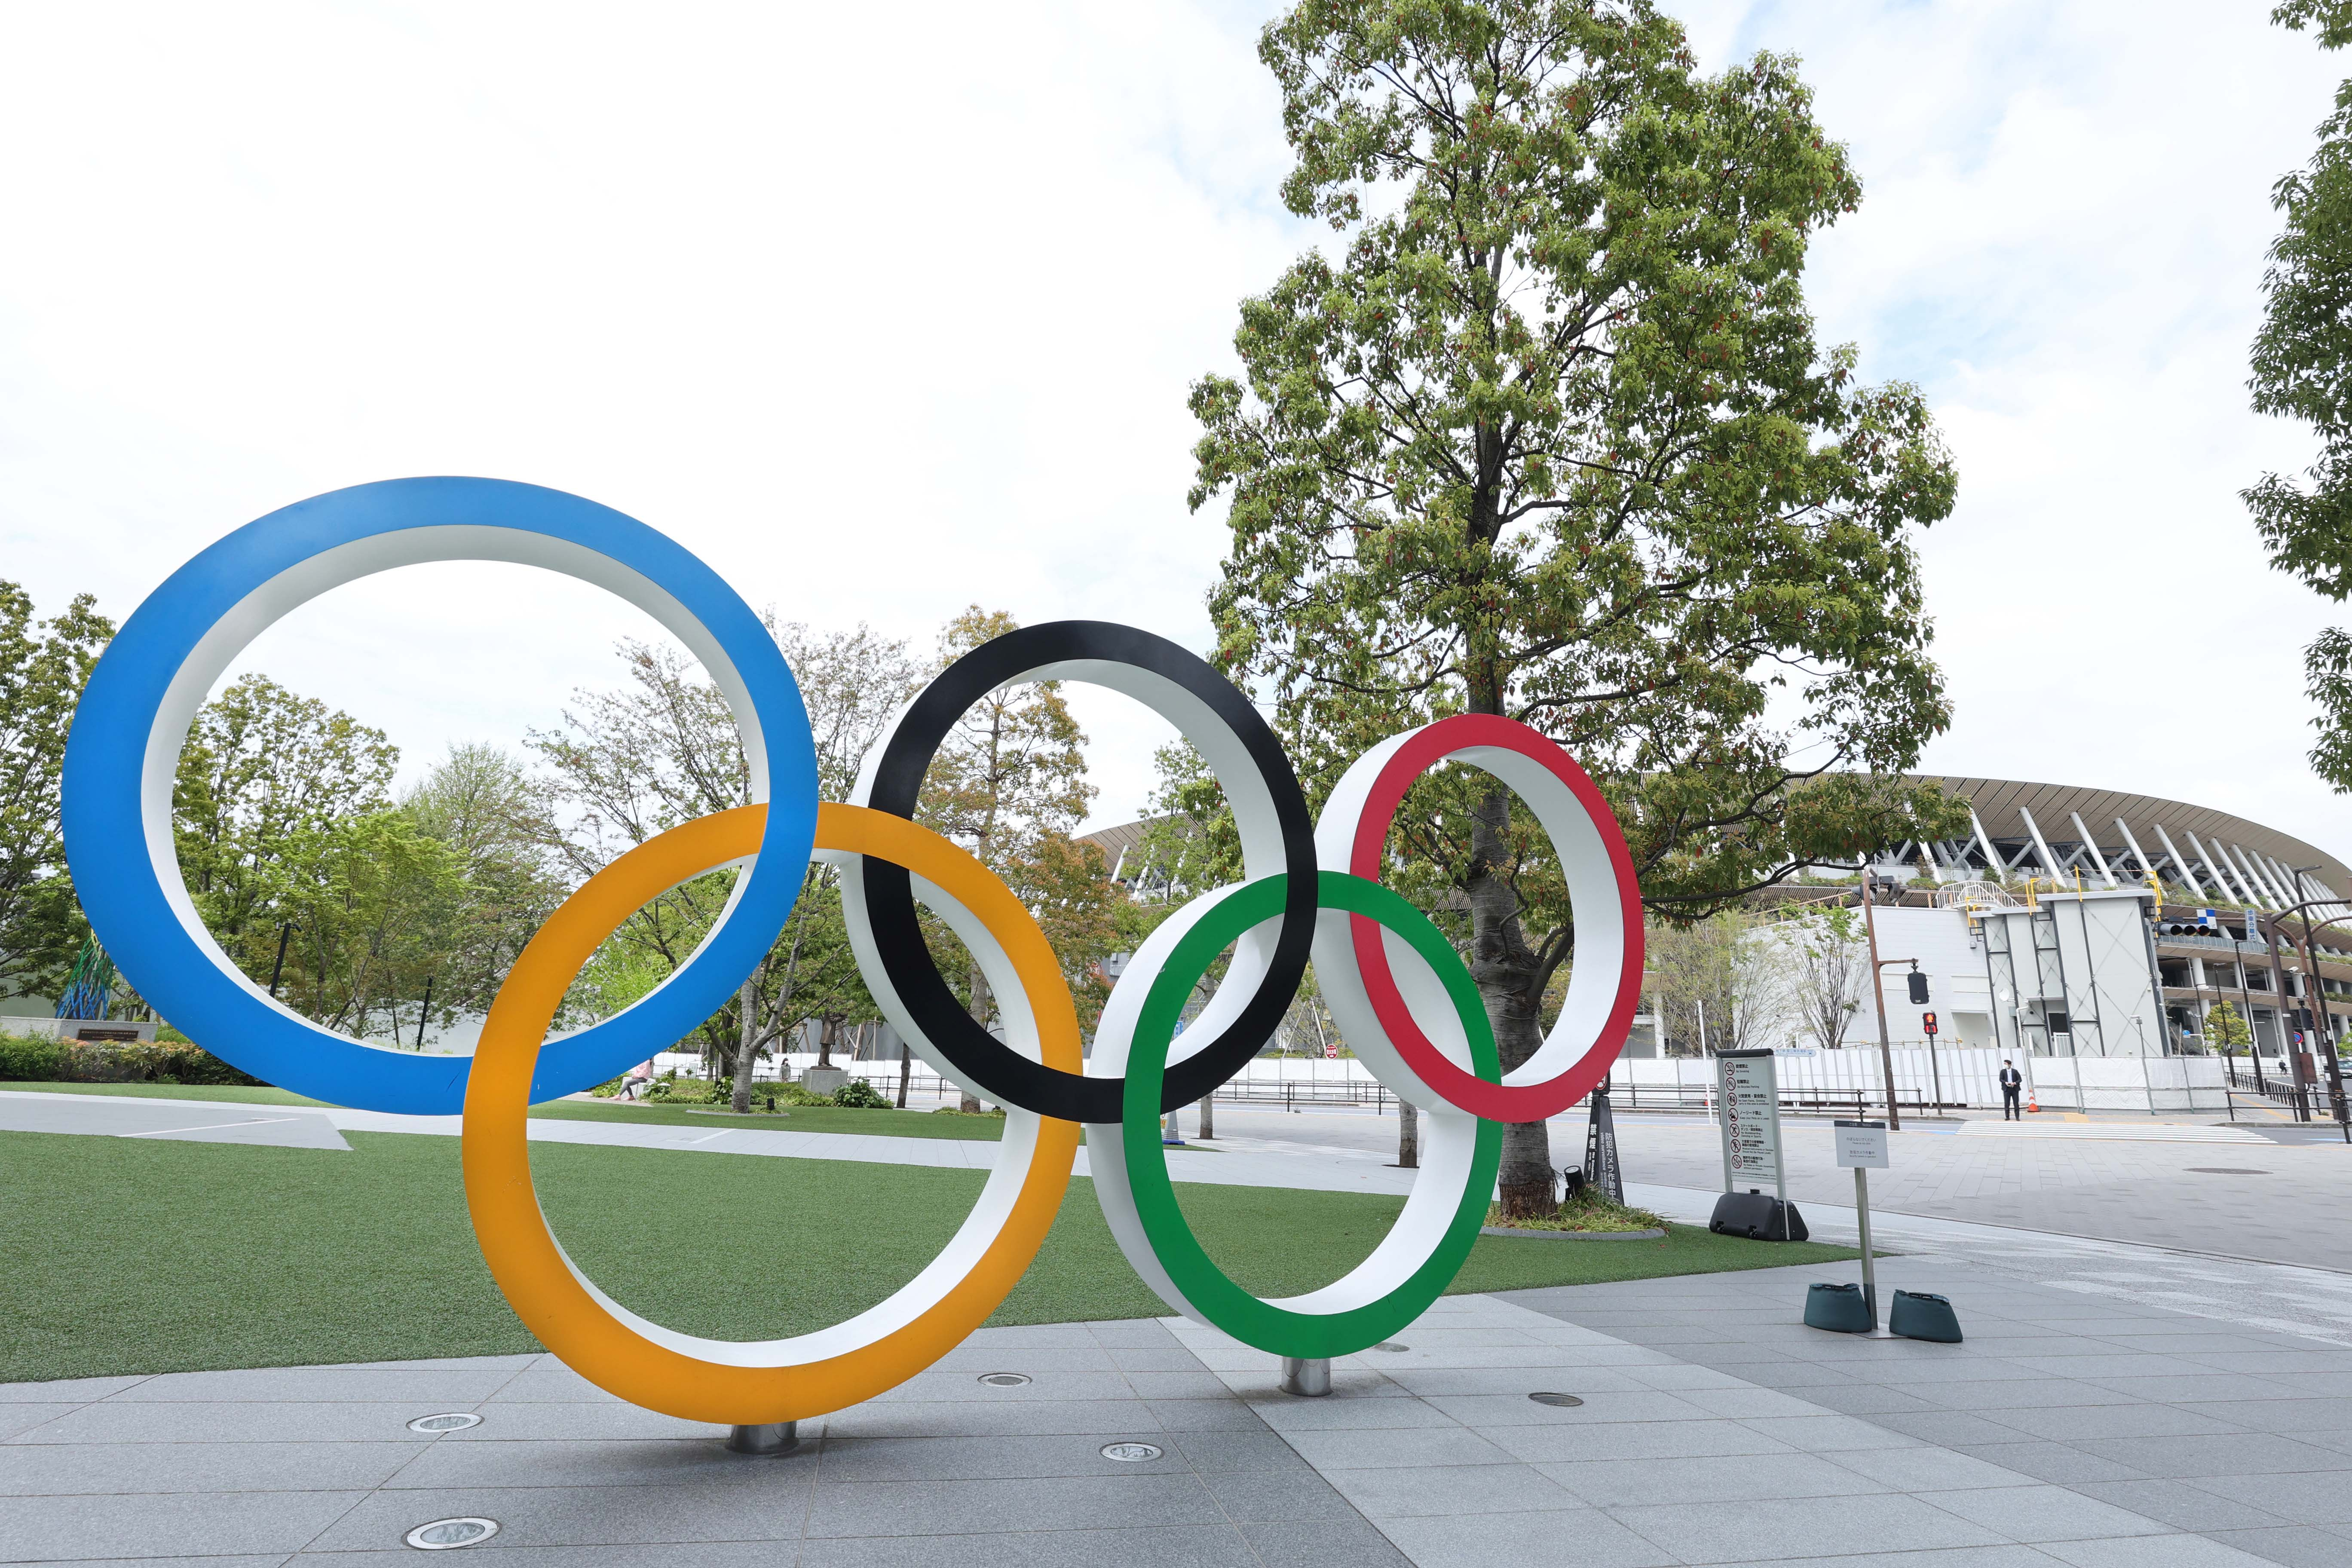 Apr 6, 2021; Tokyo, JAPAN; General view of the Olympic rings sculpture near the Japan National Stadium in preparation for the Tokyo 2020 Olympic Summer Games set to begin in July 2021. Mandatory Credit: Yukihito Taguchi-USA TODAY Sports